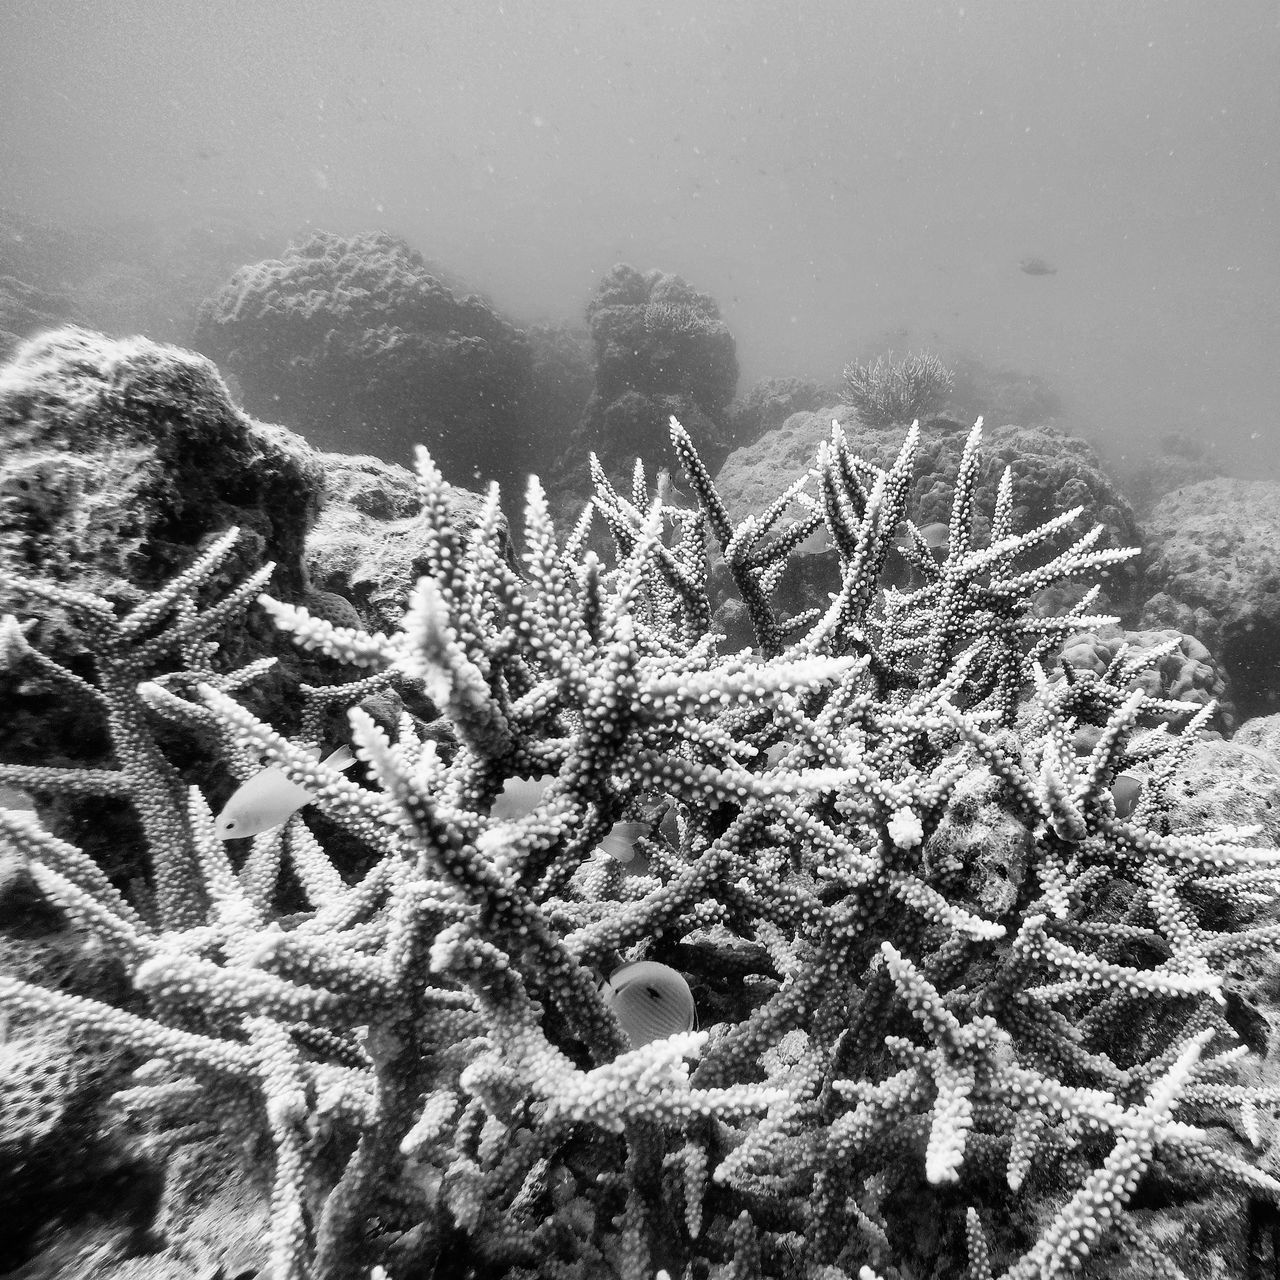 Coral Coral Reef Underwaterphotography Scuba Diving Oceaninspiration Oceanlifestyle Oceanminded_arts Protecting Where We Play Goprooftheday The Great Outdoors - 2016 EyeEm Awards UnderSea Check This Out India